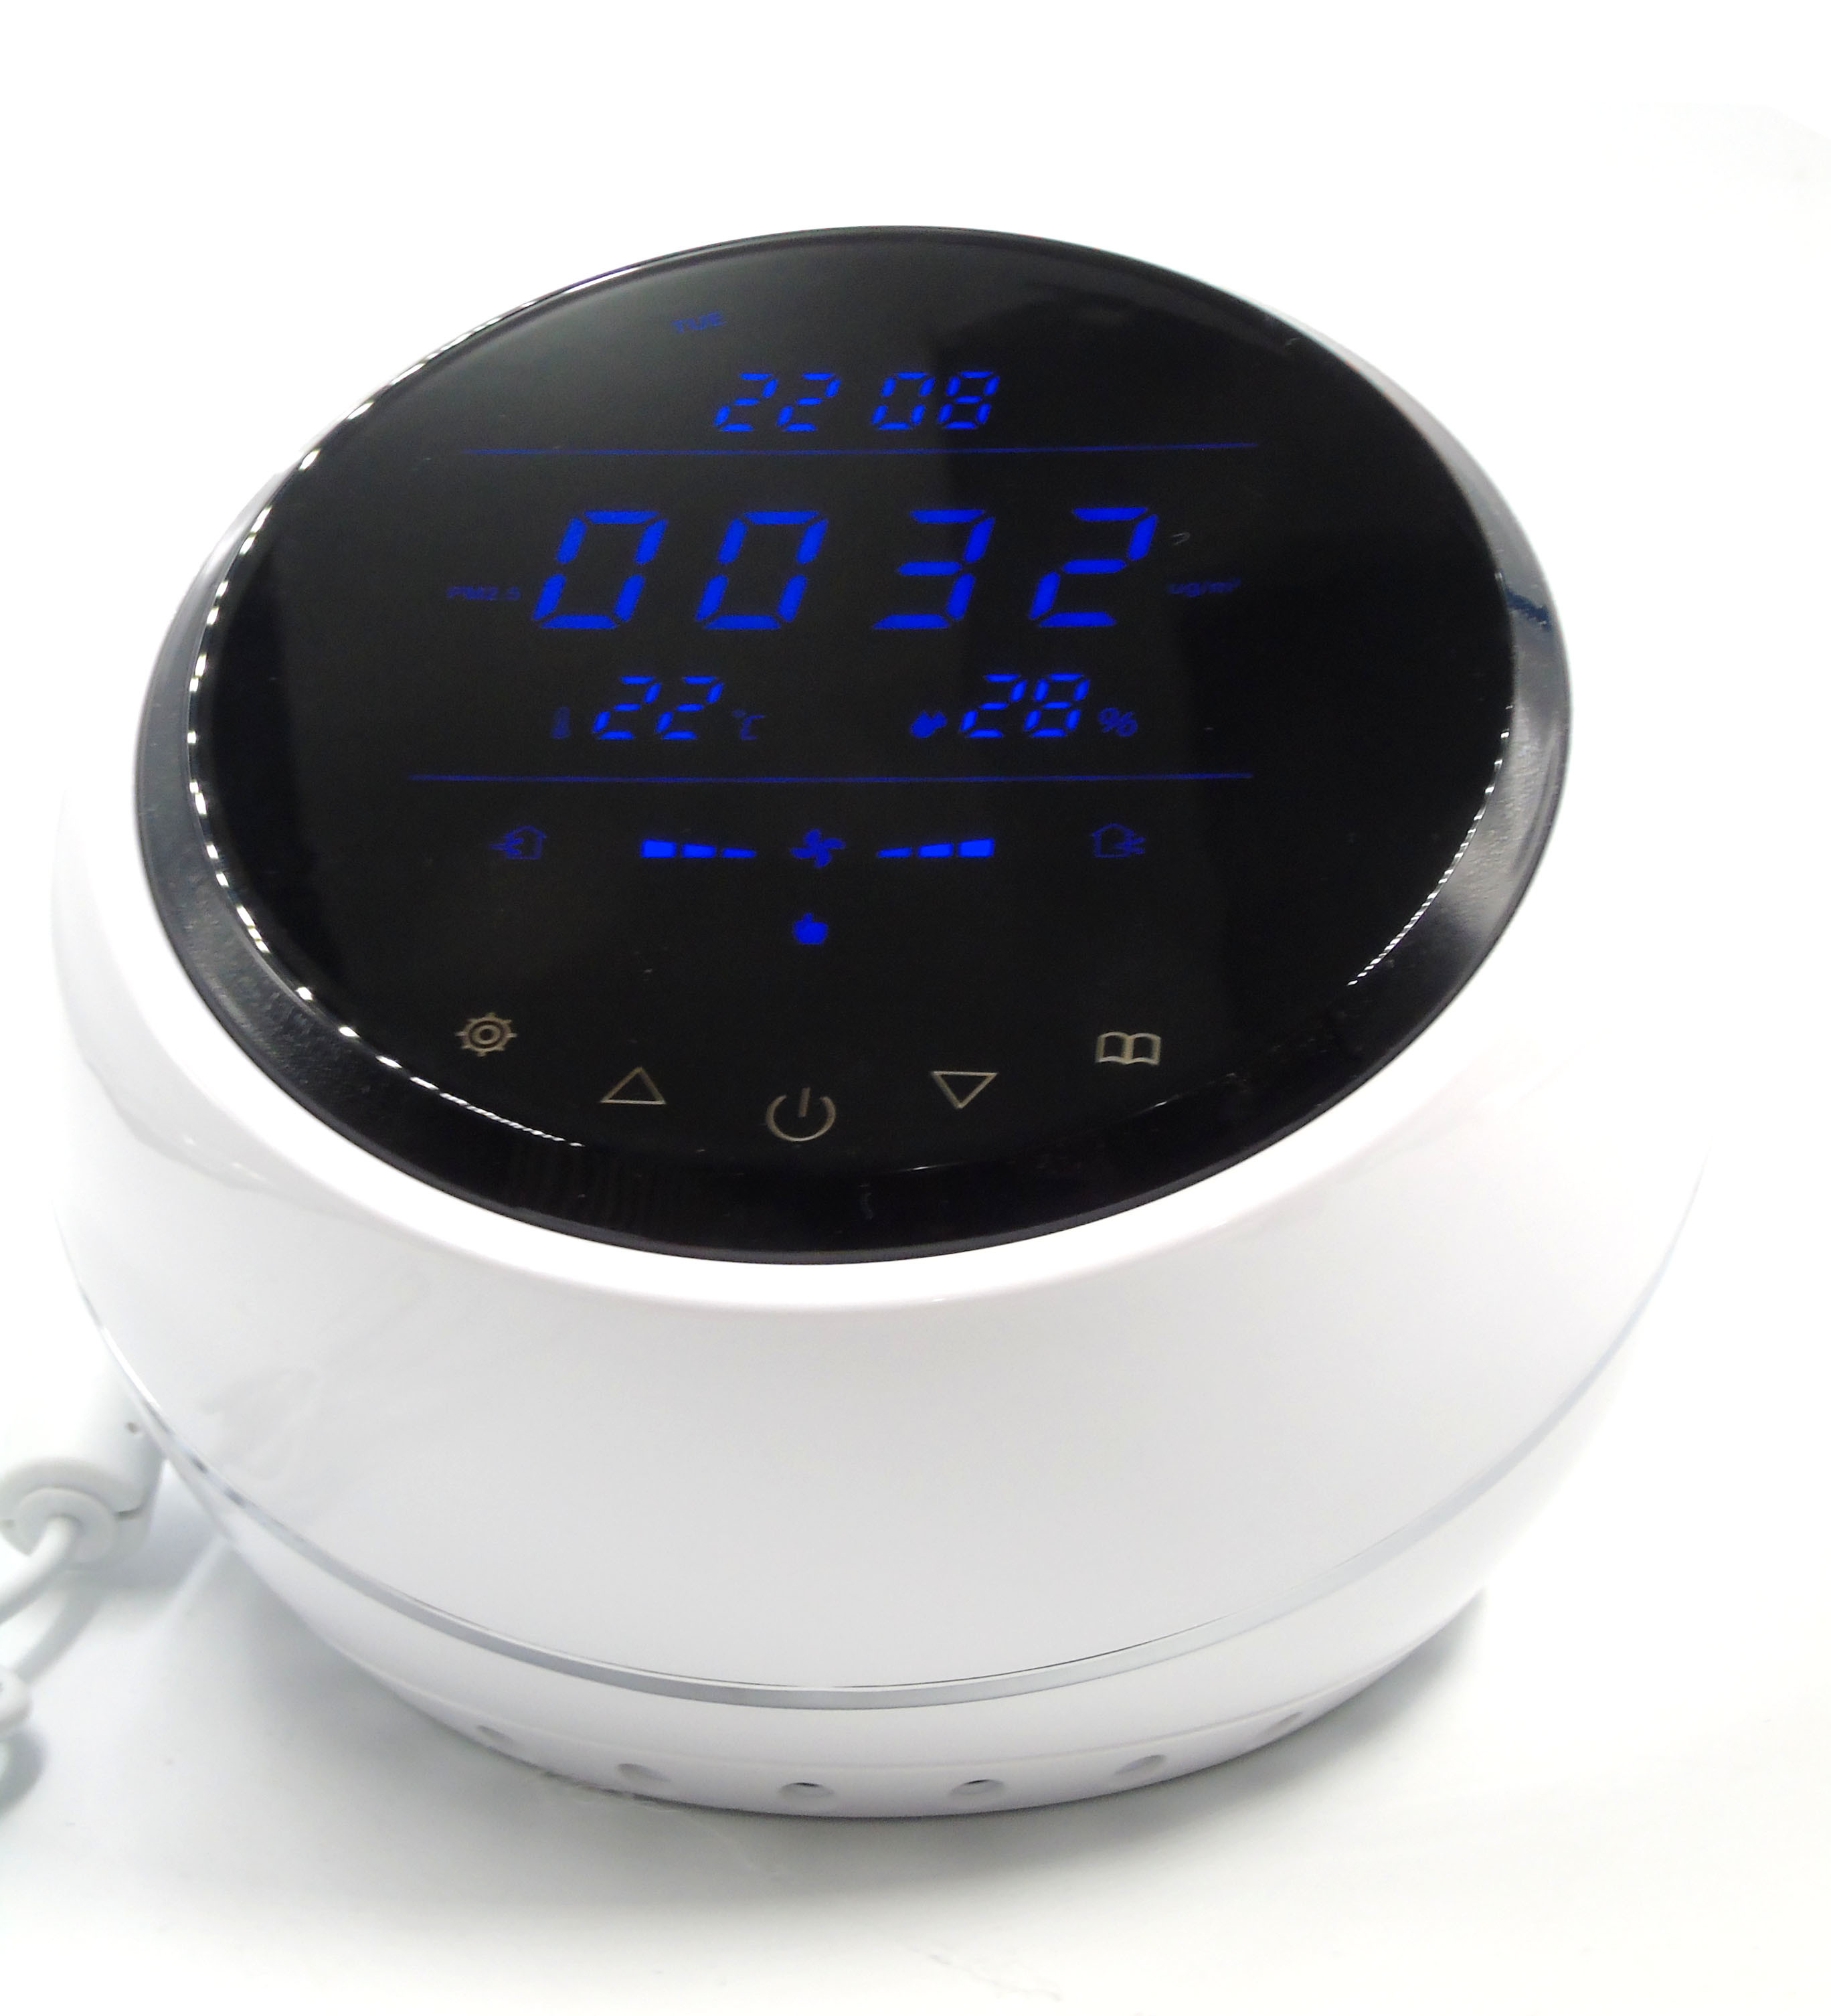 Indoor/Home Using Air System Controller Detects CO2 Pm2.5